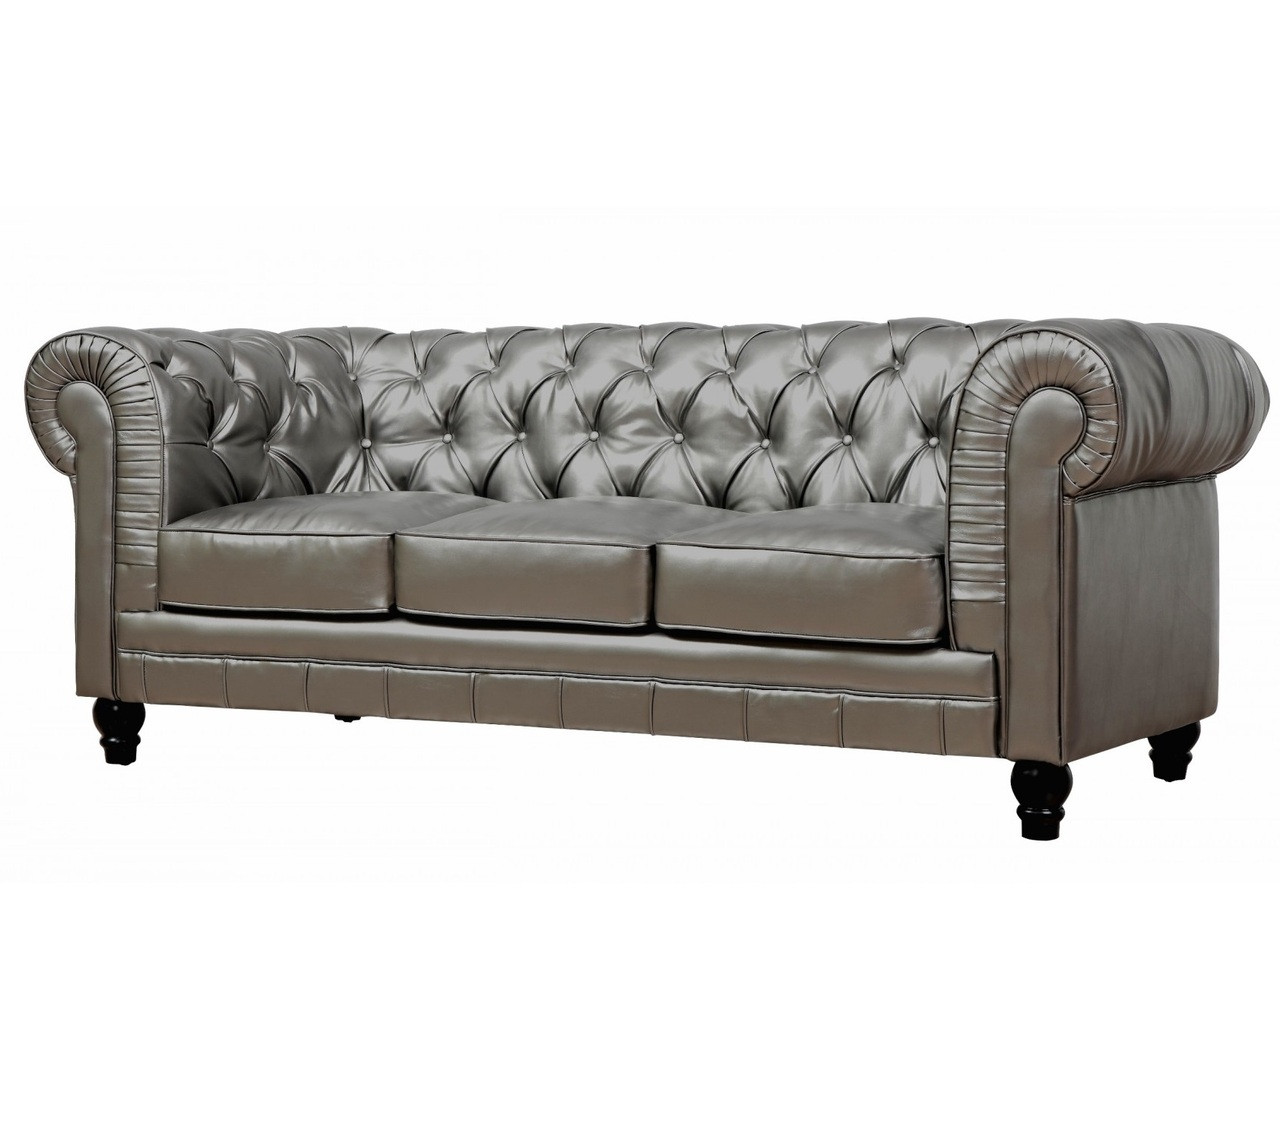 Delicieux Zahara Silver Leather Tufted Chesterfield Sofa